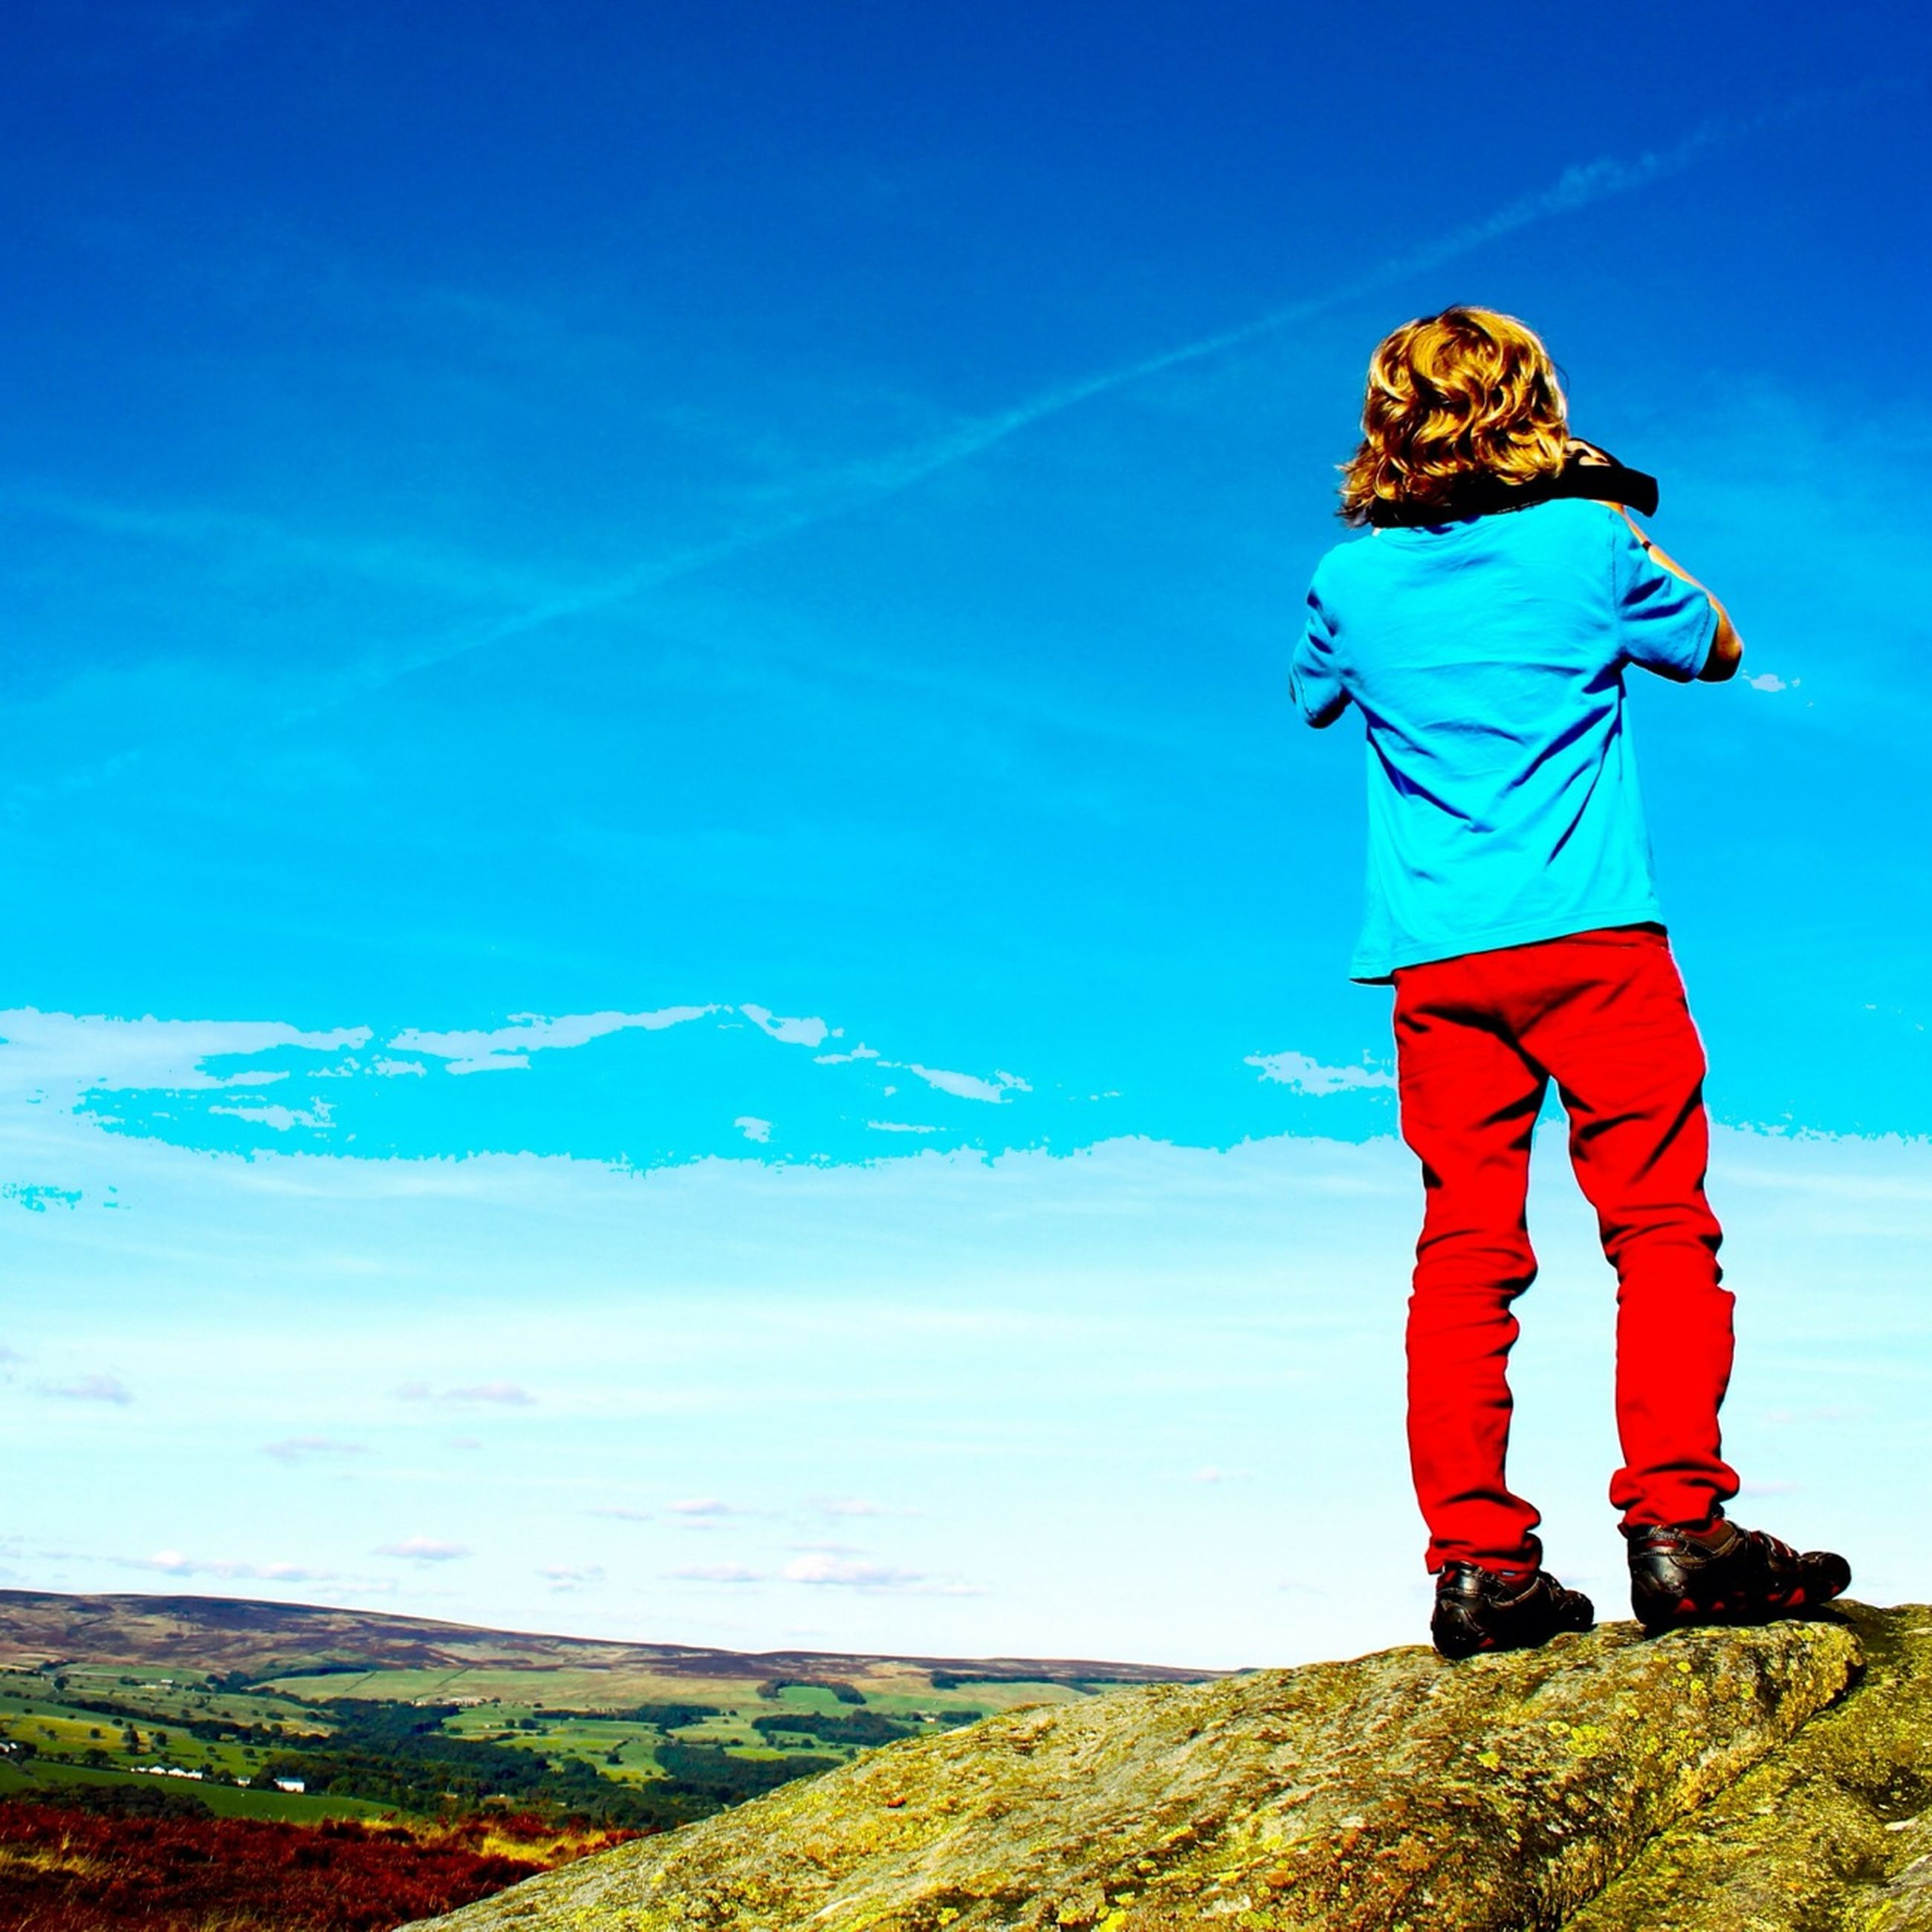 blue, leisure activity, lifestyles, standing, full length, casual clothing, sky, tranquility, rear view, tranquil scene, men, landscape, mountain, nature, person, beauty in nature, day, scenics